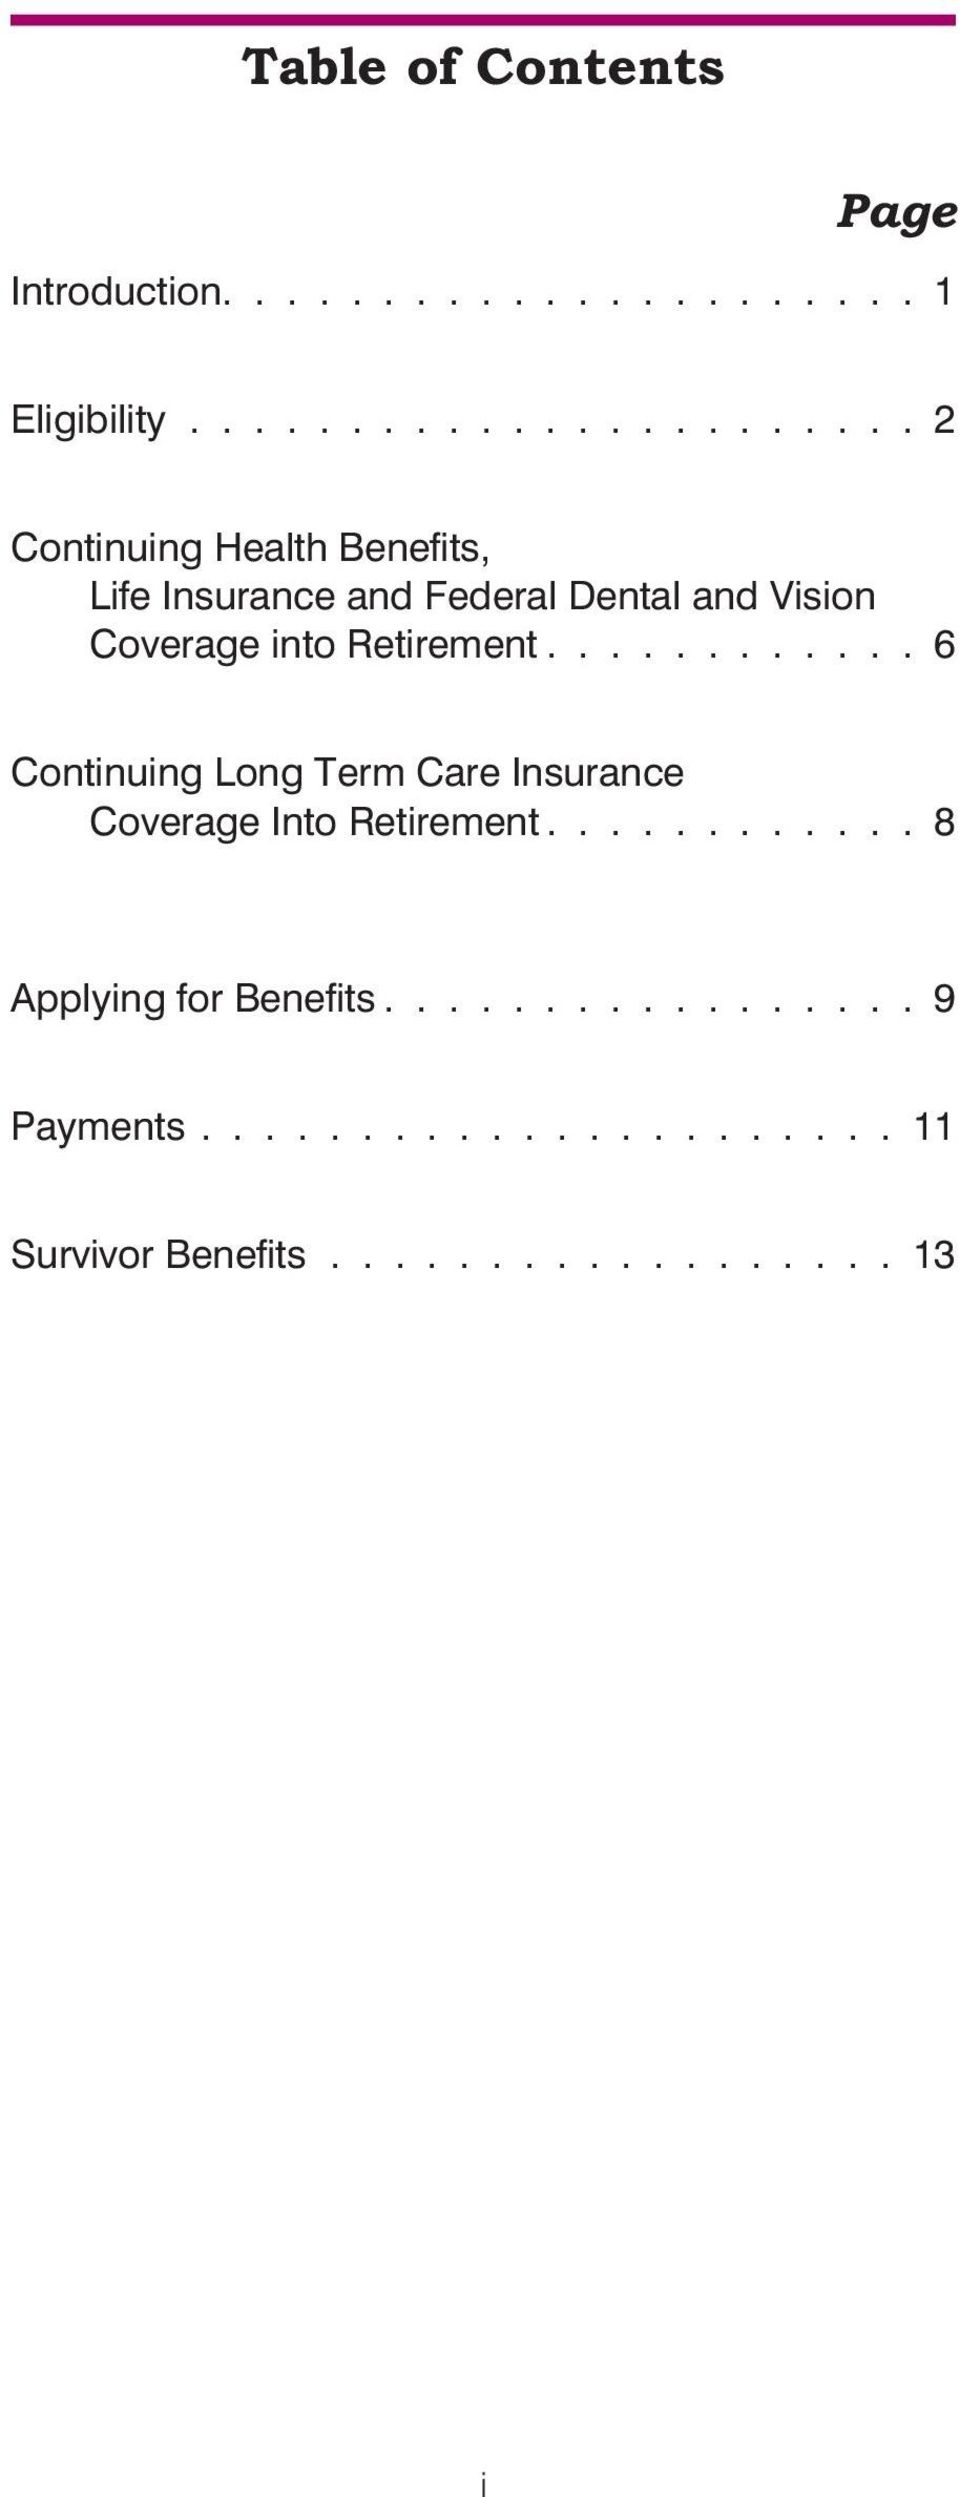 Coverage into Retirement............ 6 Continuing Long Term Care Insurance Coverage Into Retirement.